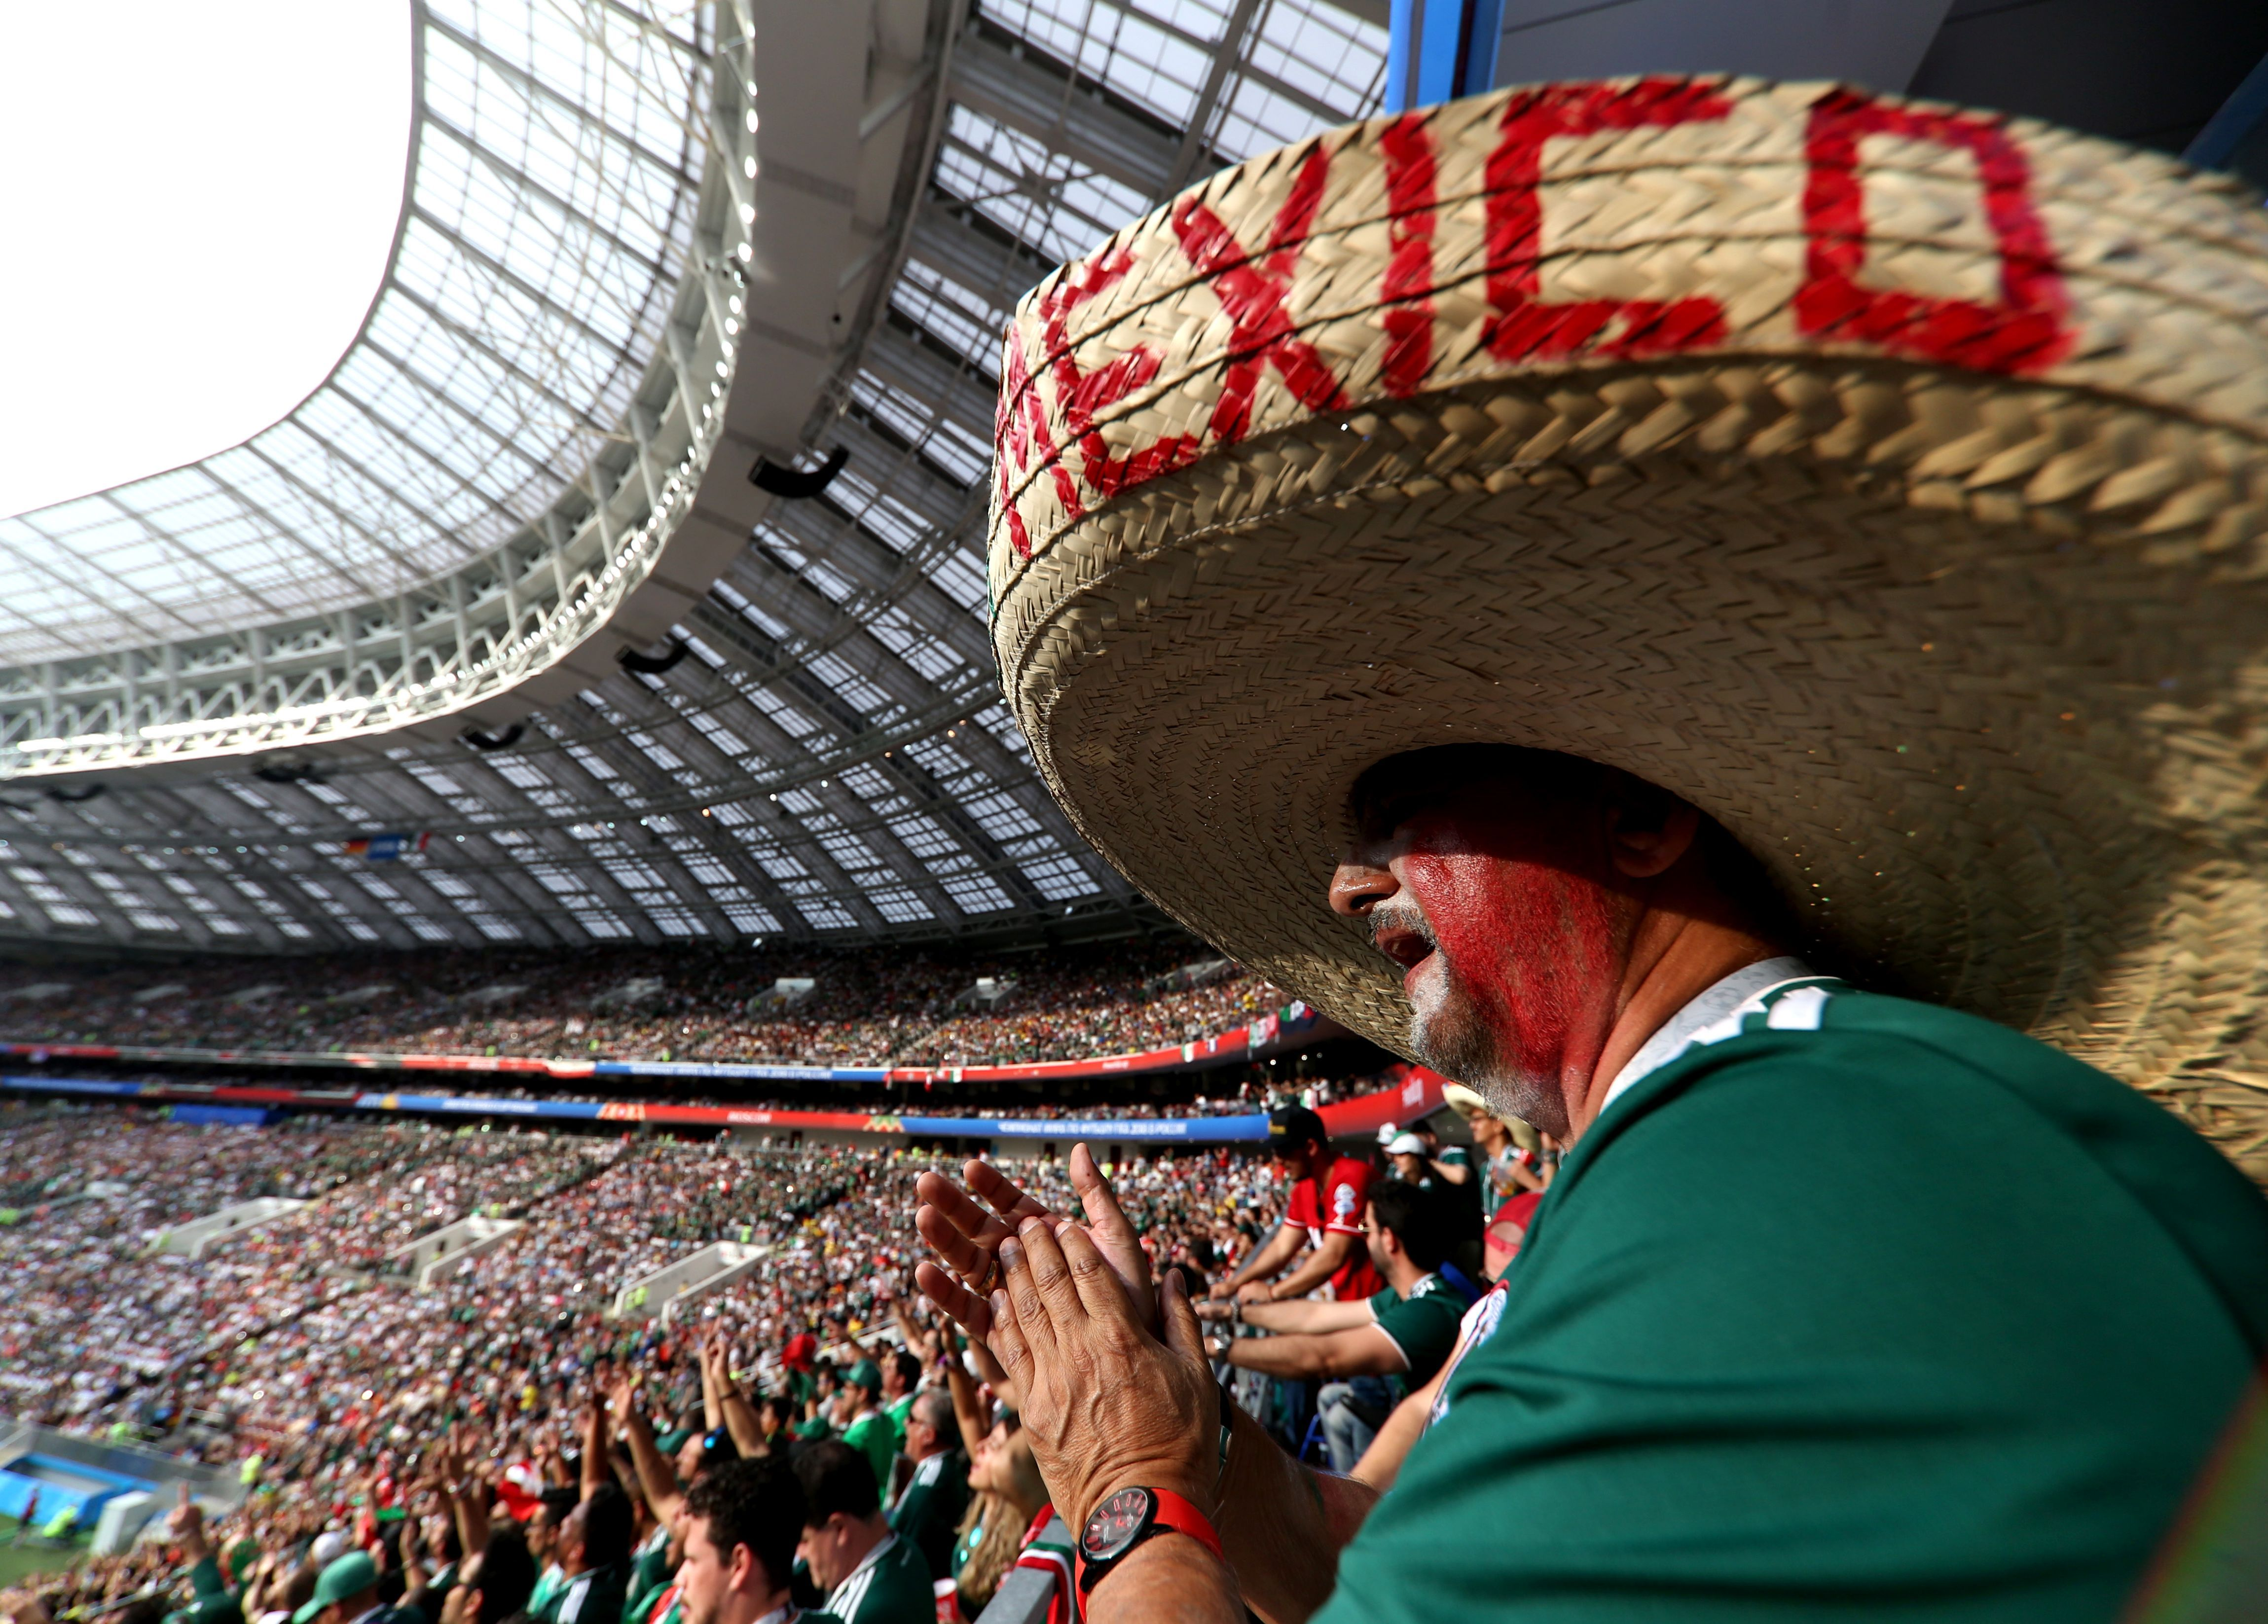 Mexico fans were loud and proud in Moscow, with nearly 30,000 attending the match.